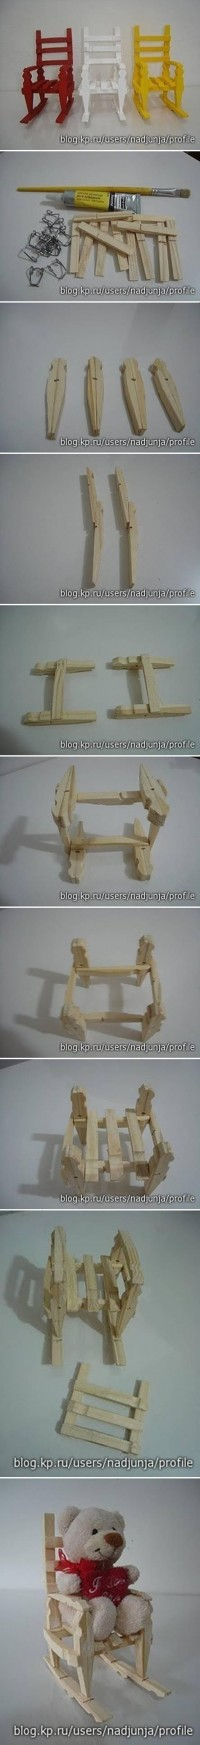 DIY Clothespin Rocking Chair DIY Projects | UsefulDIY.com